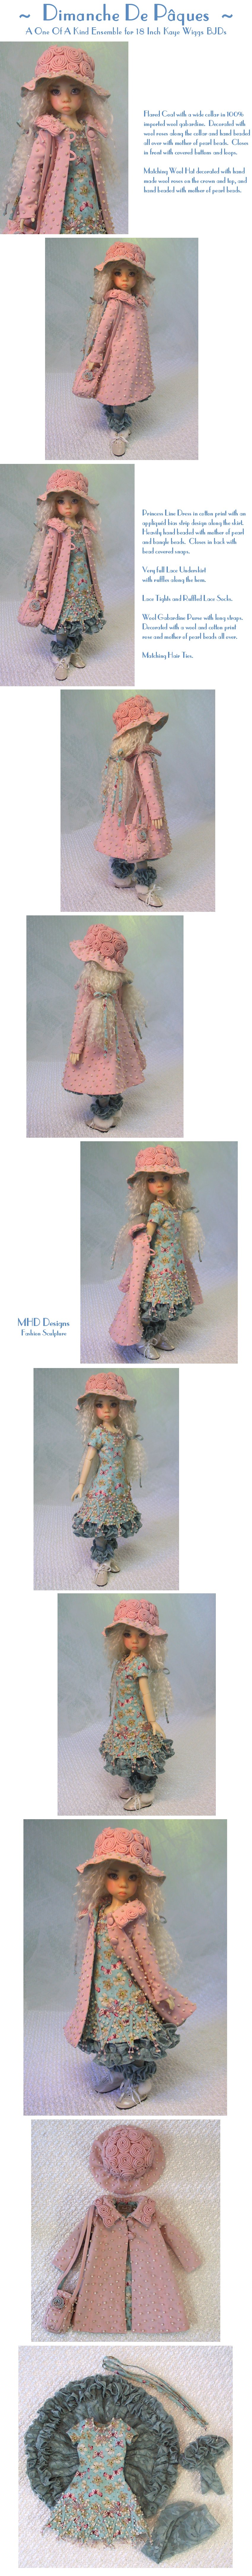 Easter Sunday  - a One Of A Kind Ensemble by MHD Designs - High Resolution Photographs, your patience is appreciated!